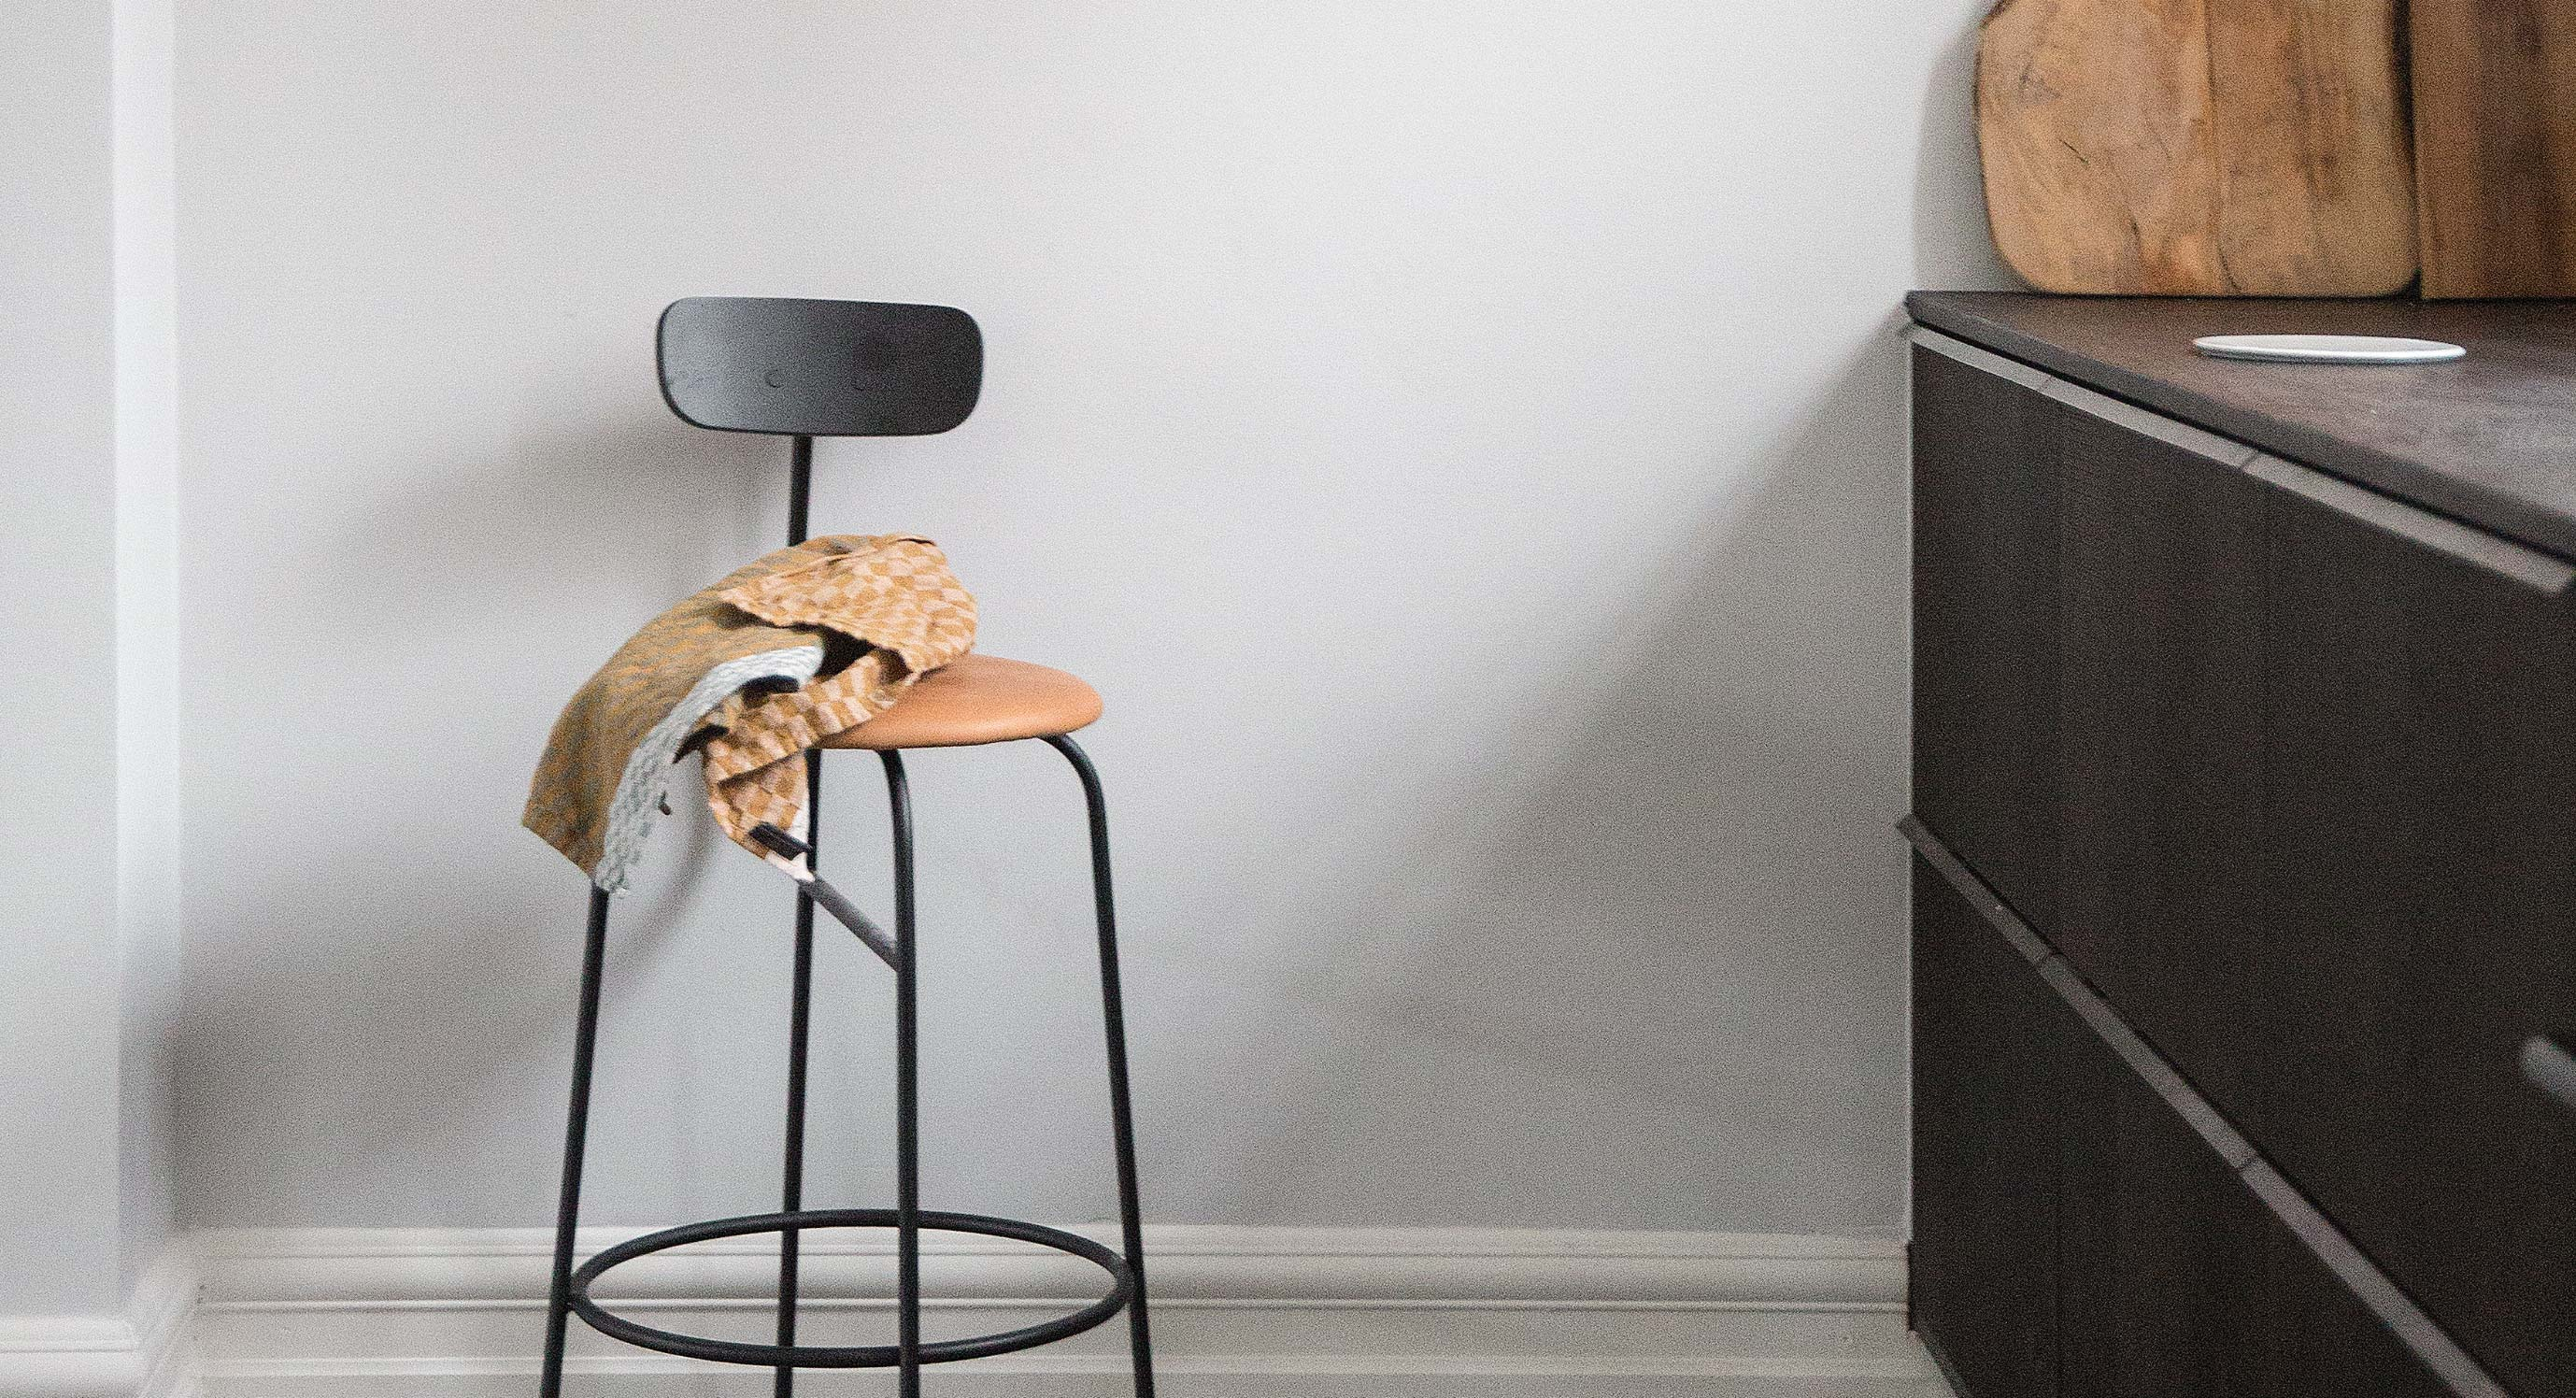 5 Of The Best Bar Stools To Shake Up Your Kitchen Space